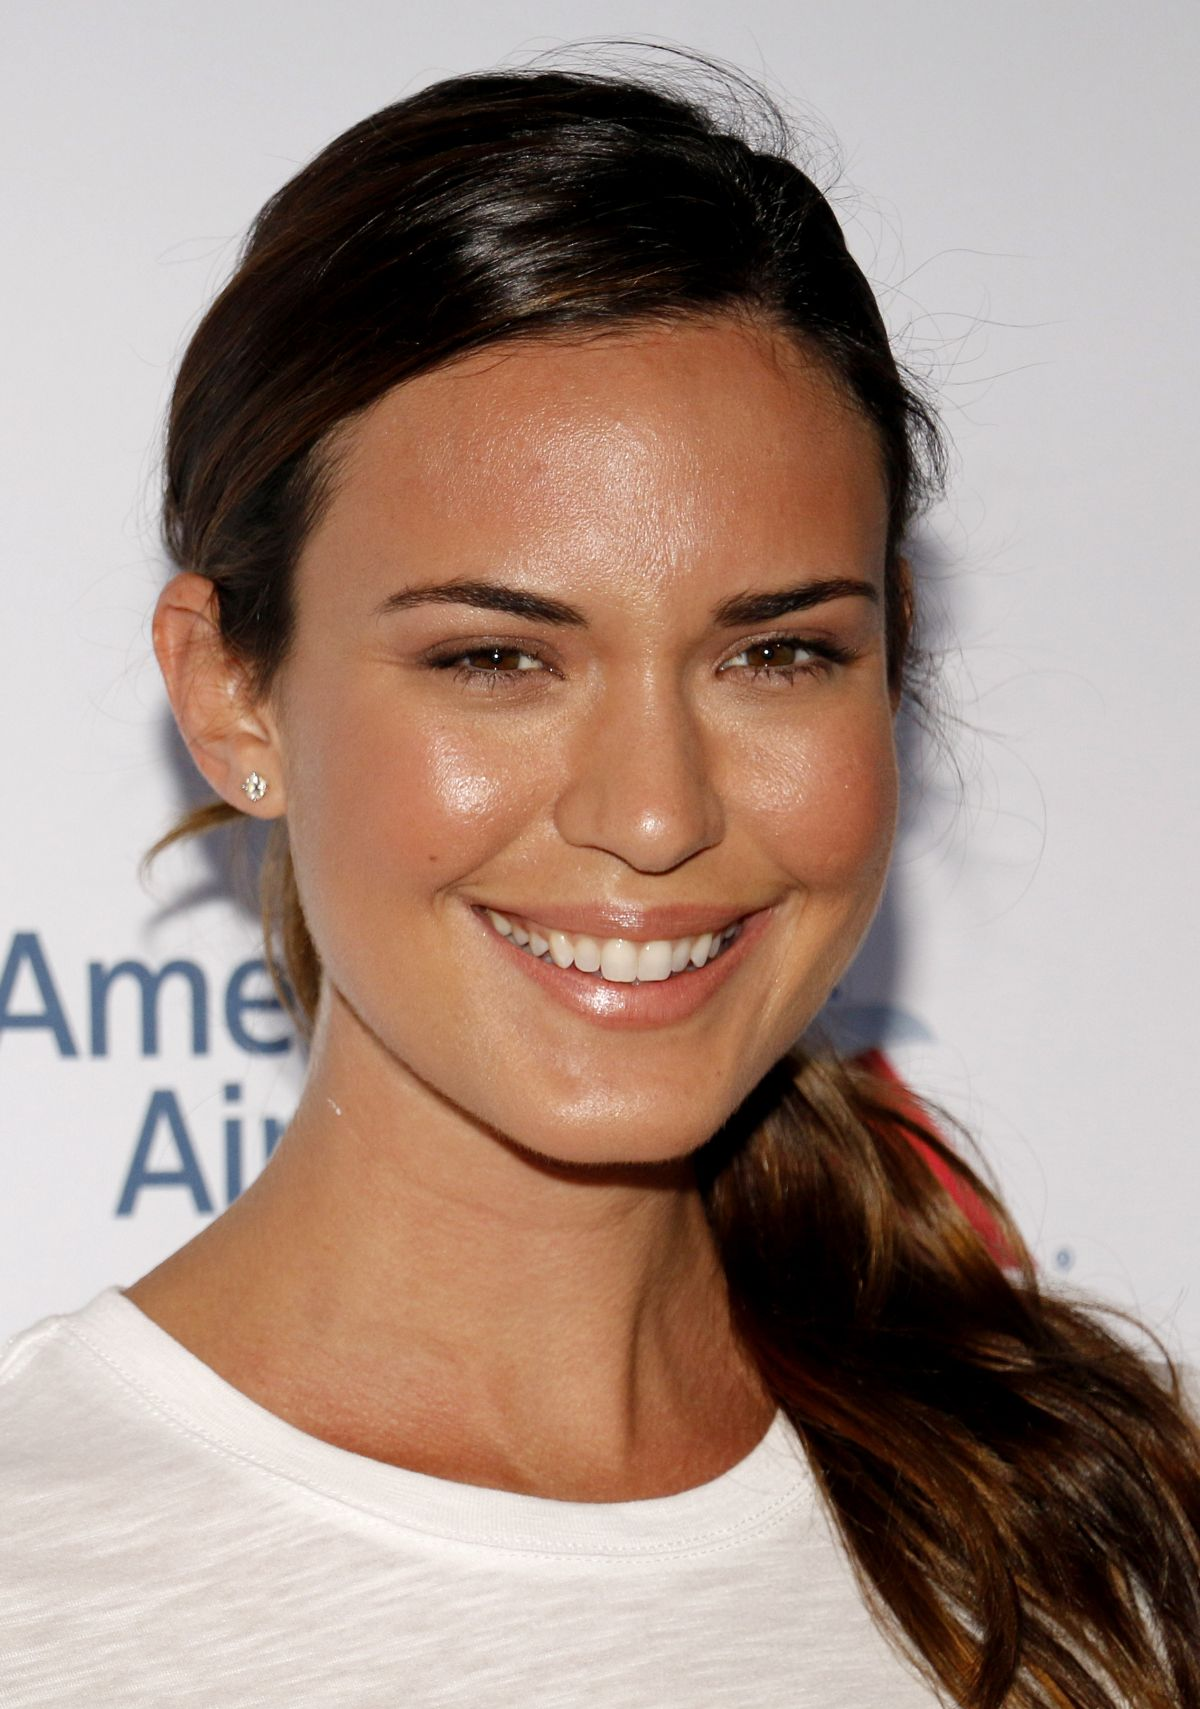 Odette Annable At 5th Biennial Stand Up To Cancer at Walt Disney Concert Hall in Los Angeles, CA   odette-annable-at-5th-biennial-stand-up-to-cancer-at-walt-disney-concert-hall-in-los-angeles-ca_12